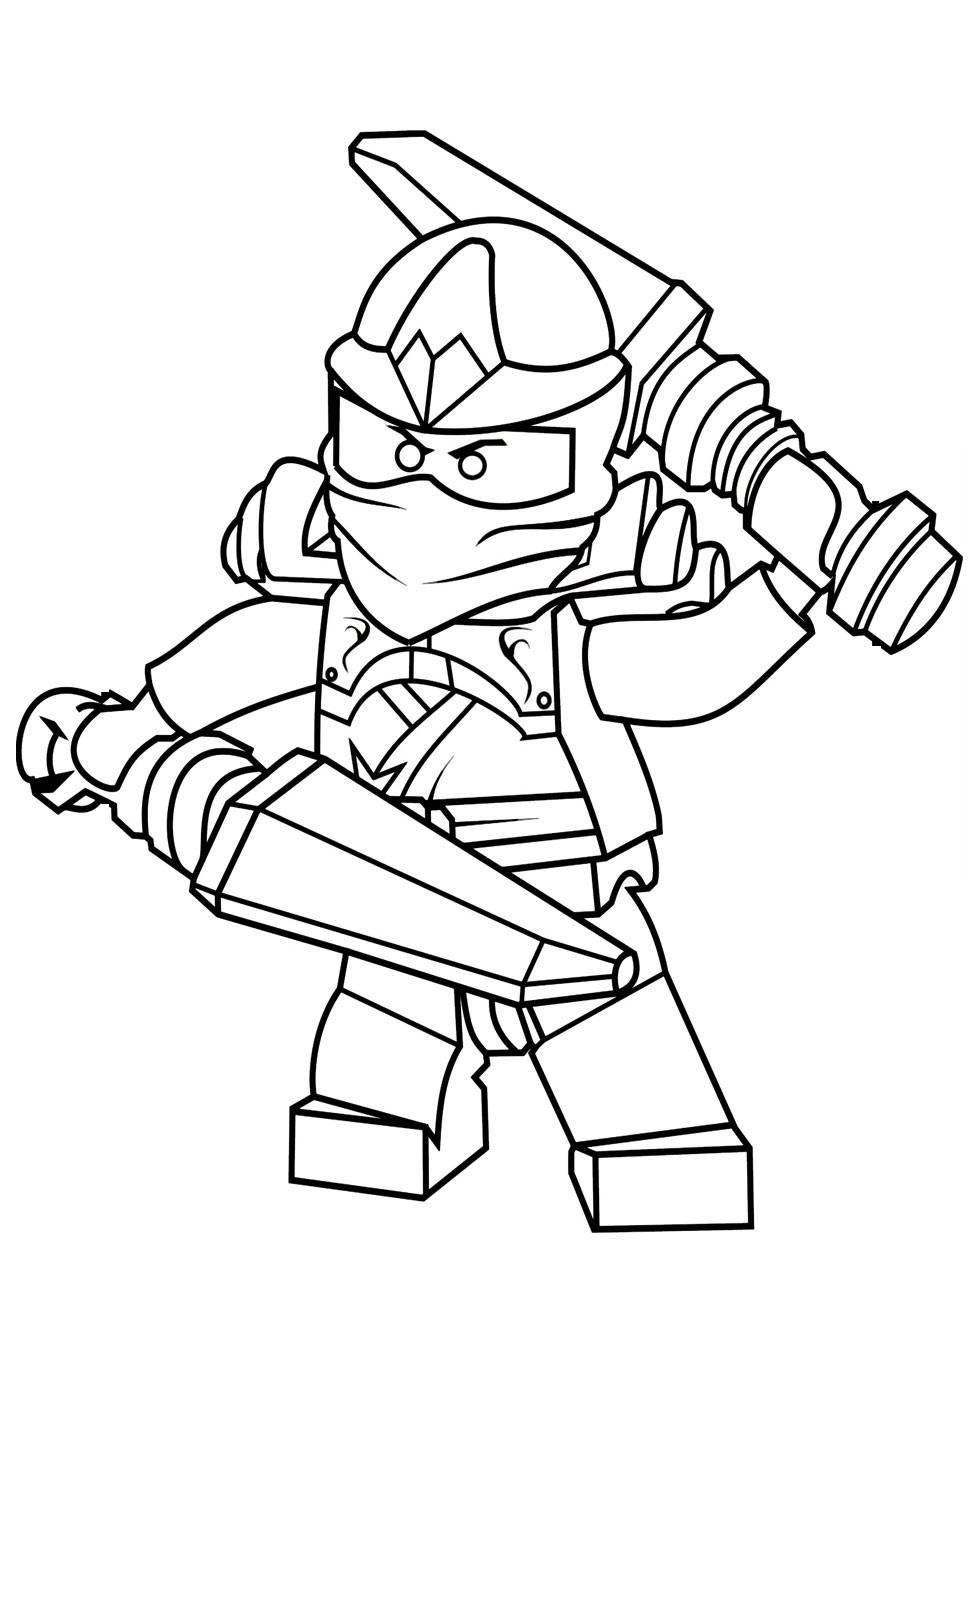 lego free printable coloring pages lego drawing at getdrawings free download coloring printable pages free lego